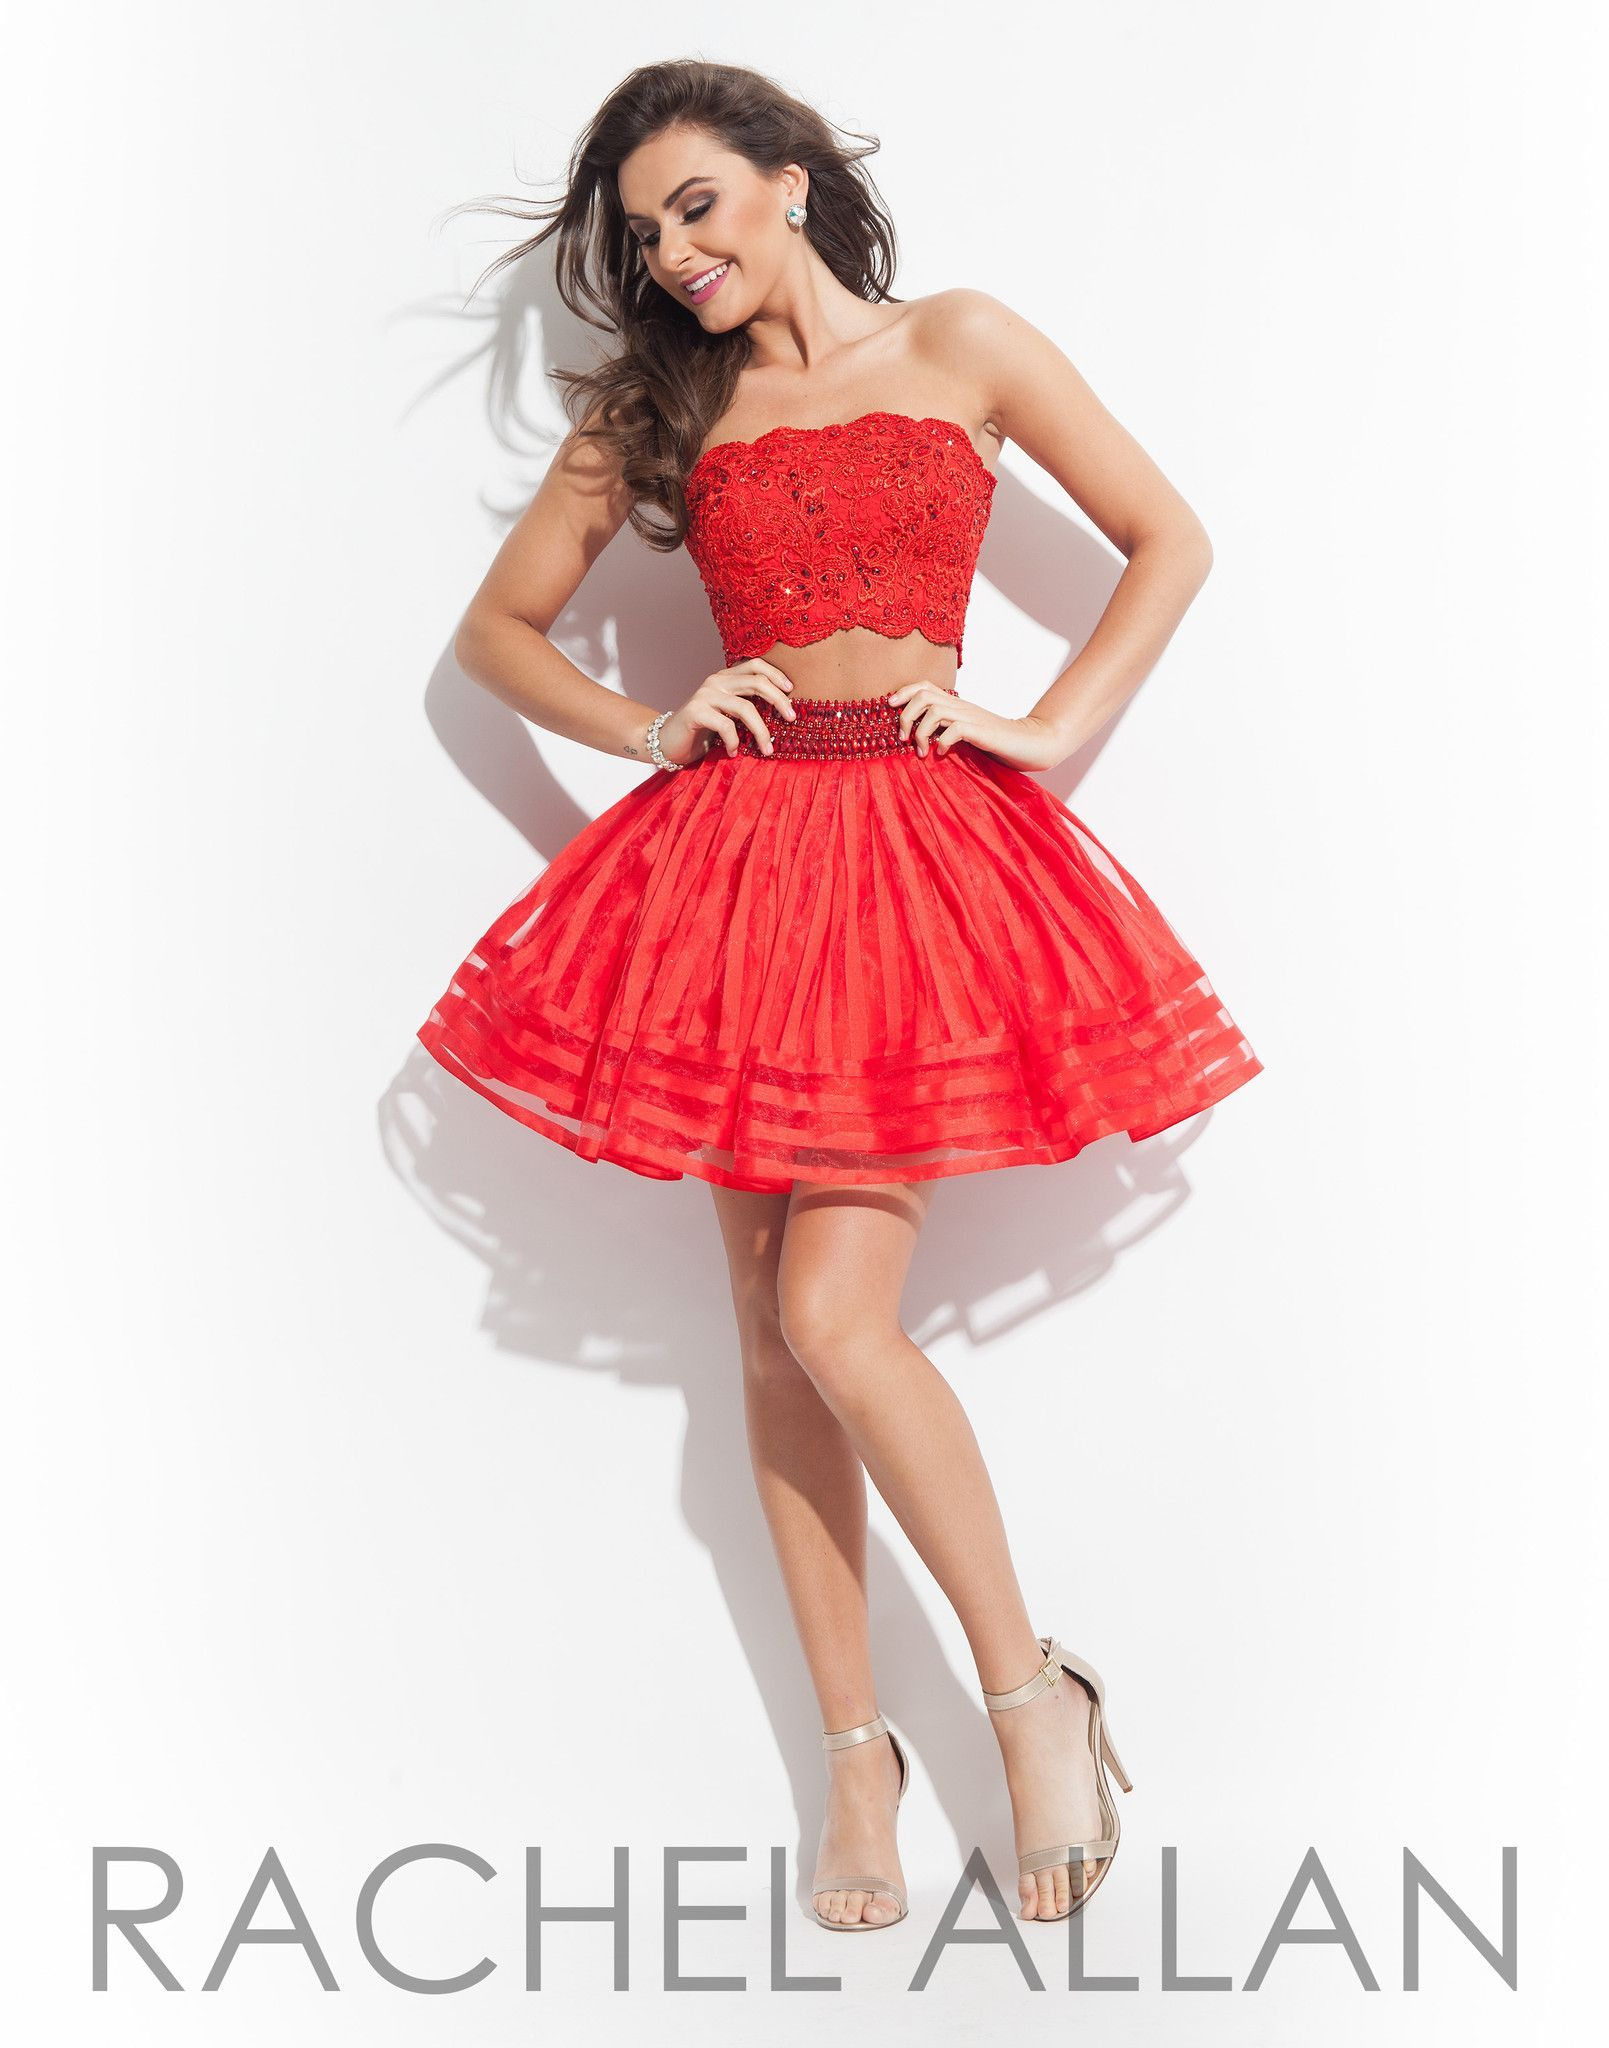 Rachel allan red two piece homecoming dress short dresses